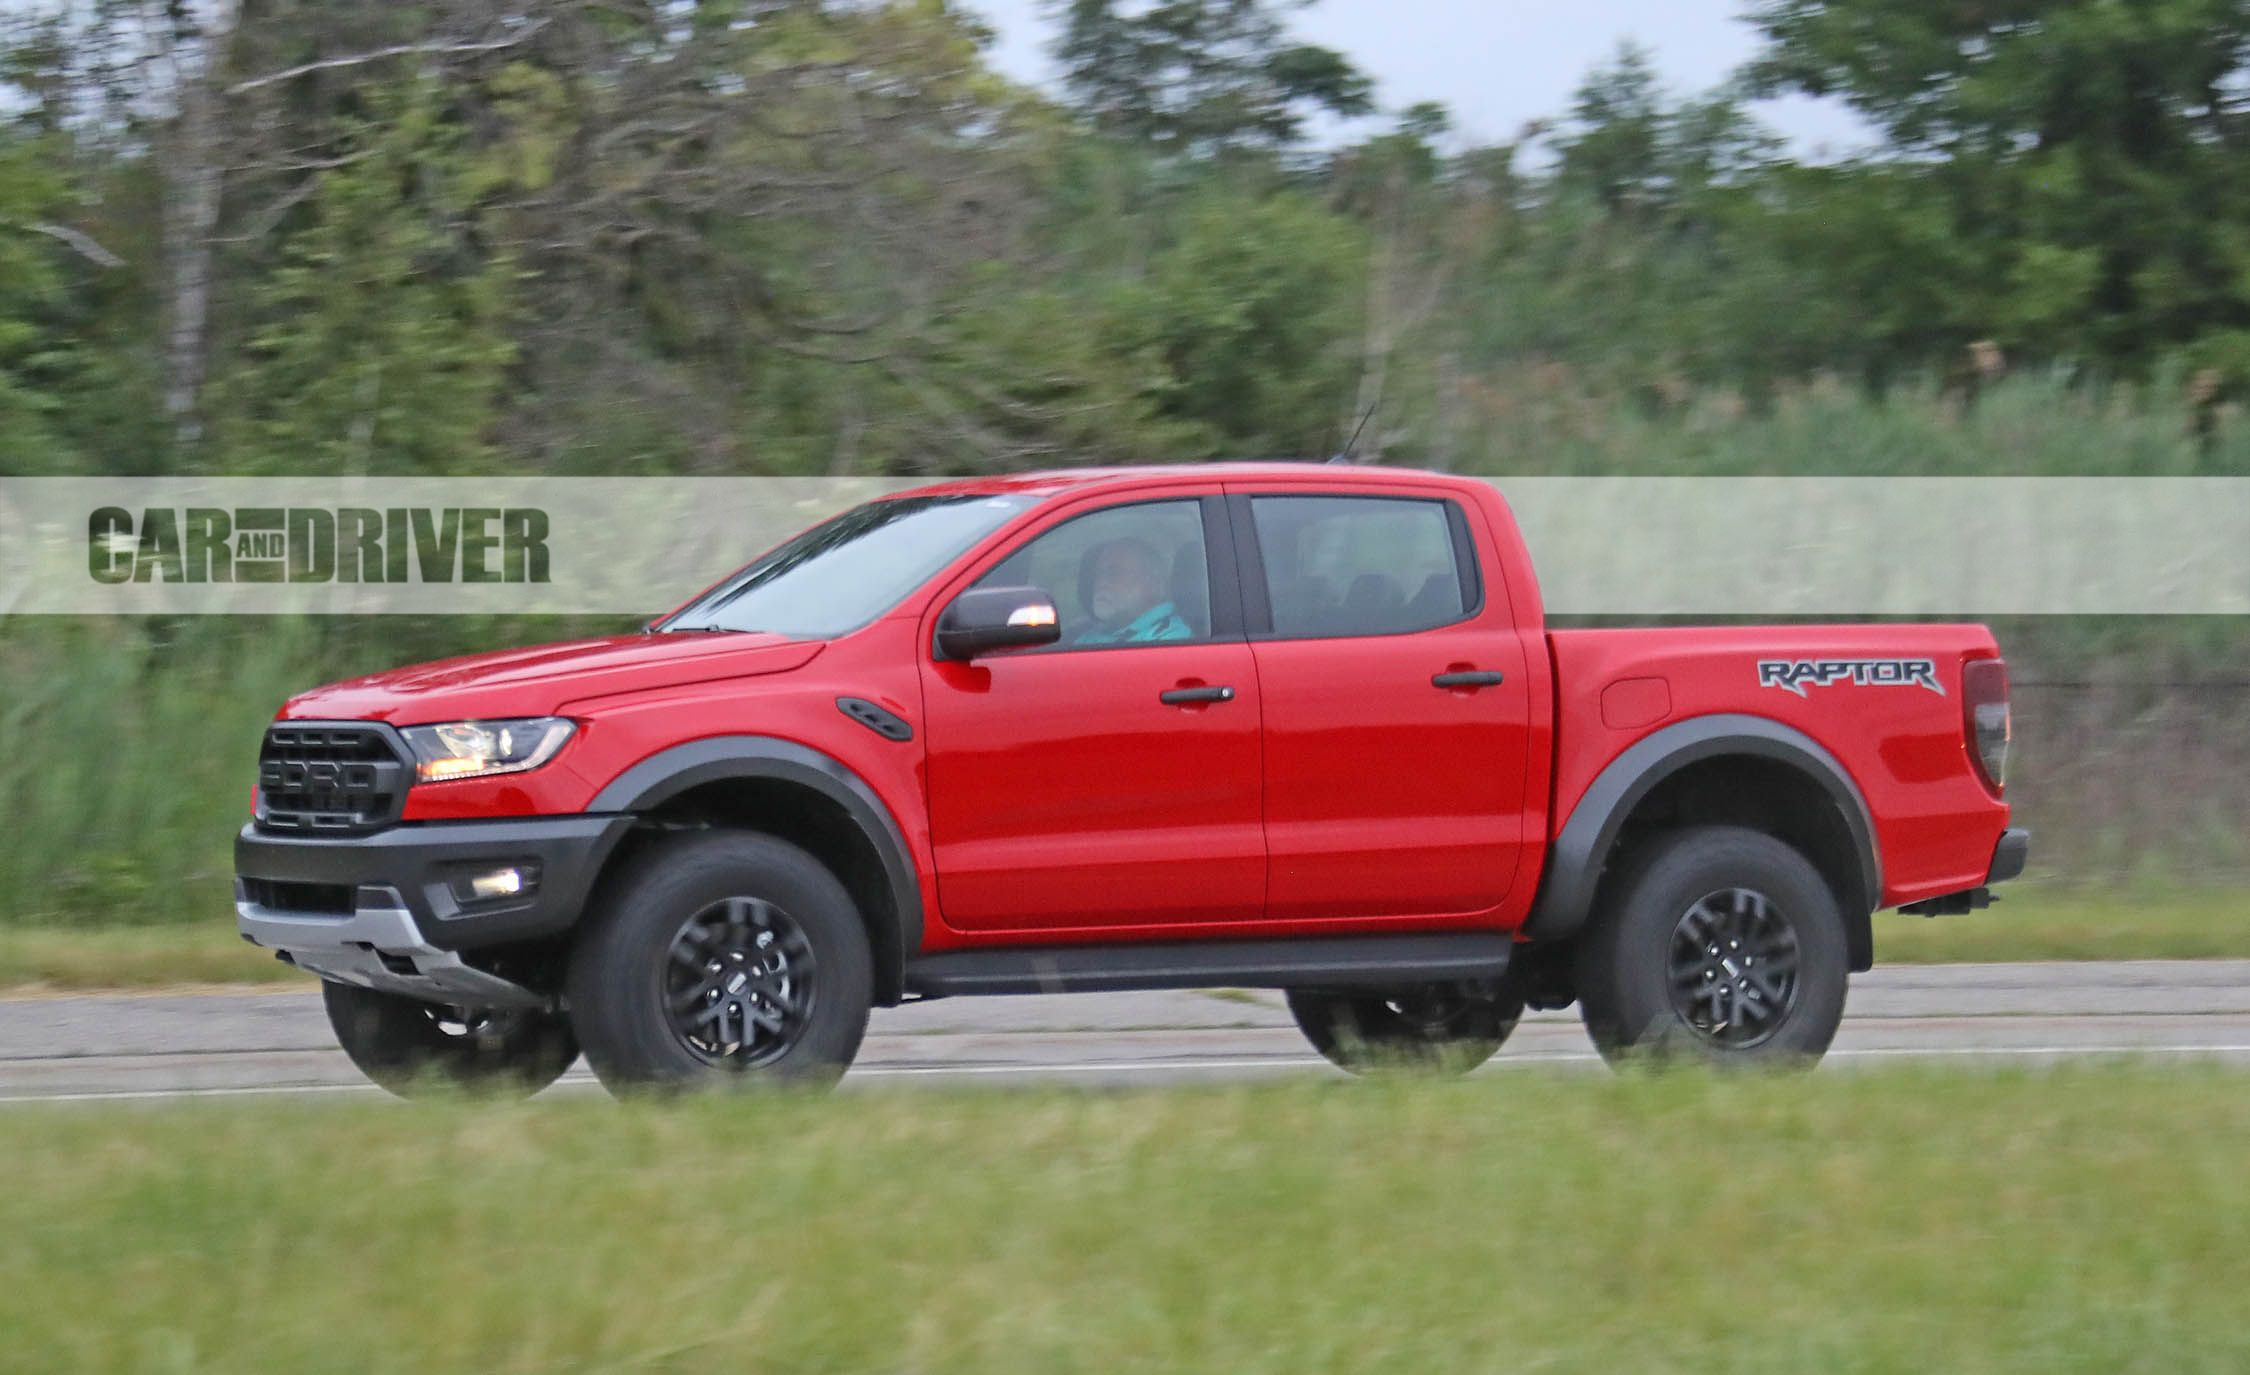 Ford Ranger Raptor Reviews | Ford Ranger Raptor Price, Photos, and Specs | Car and Driver